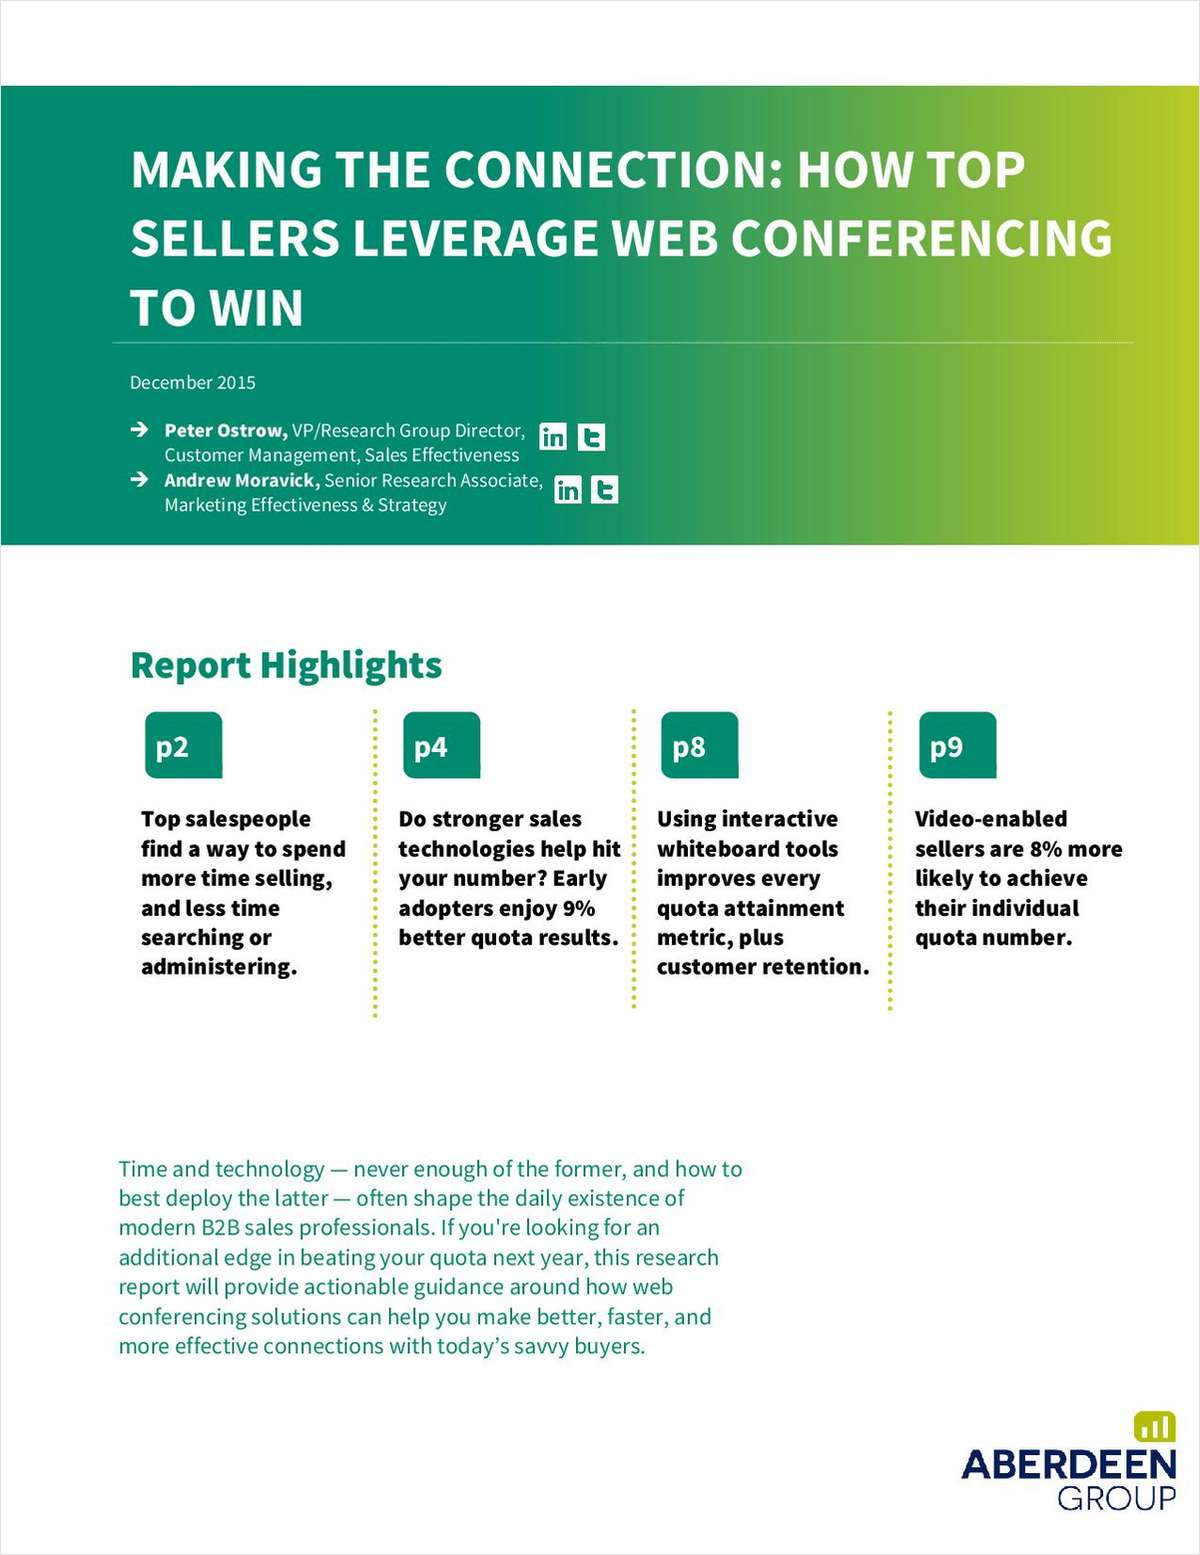 How Top Sellers Leverage Web Conferencing to Win